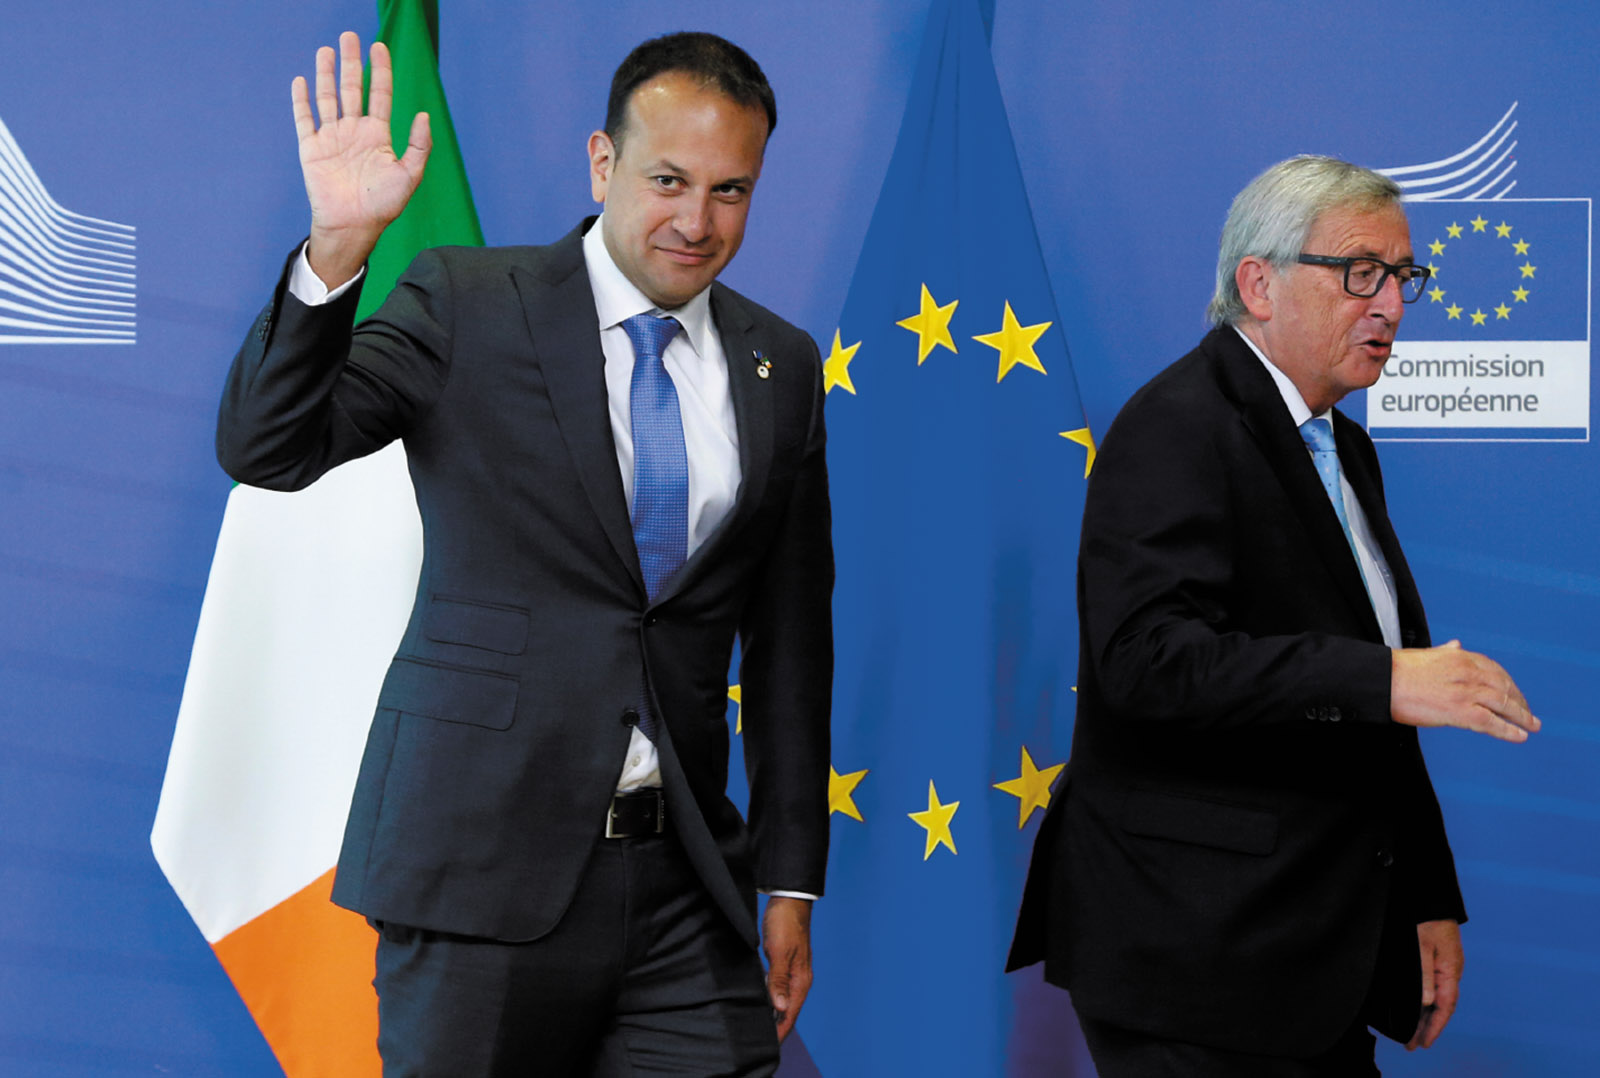 Irish Prime Minister Leo Varadkar and European Commission President Jean-Claude Juncker at a summit of the EU, Brussels, June 2017